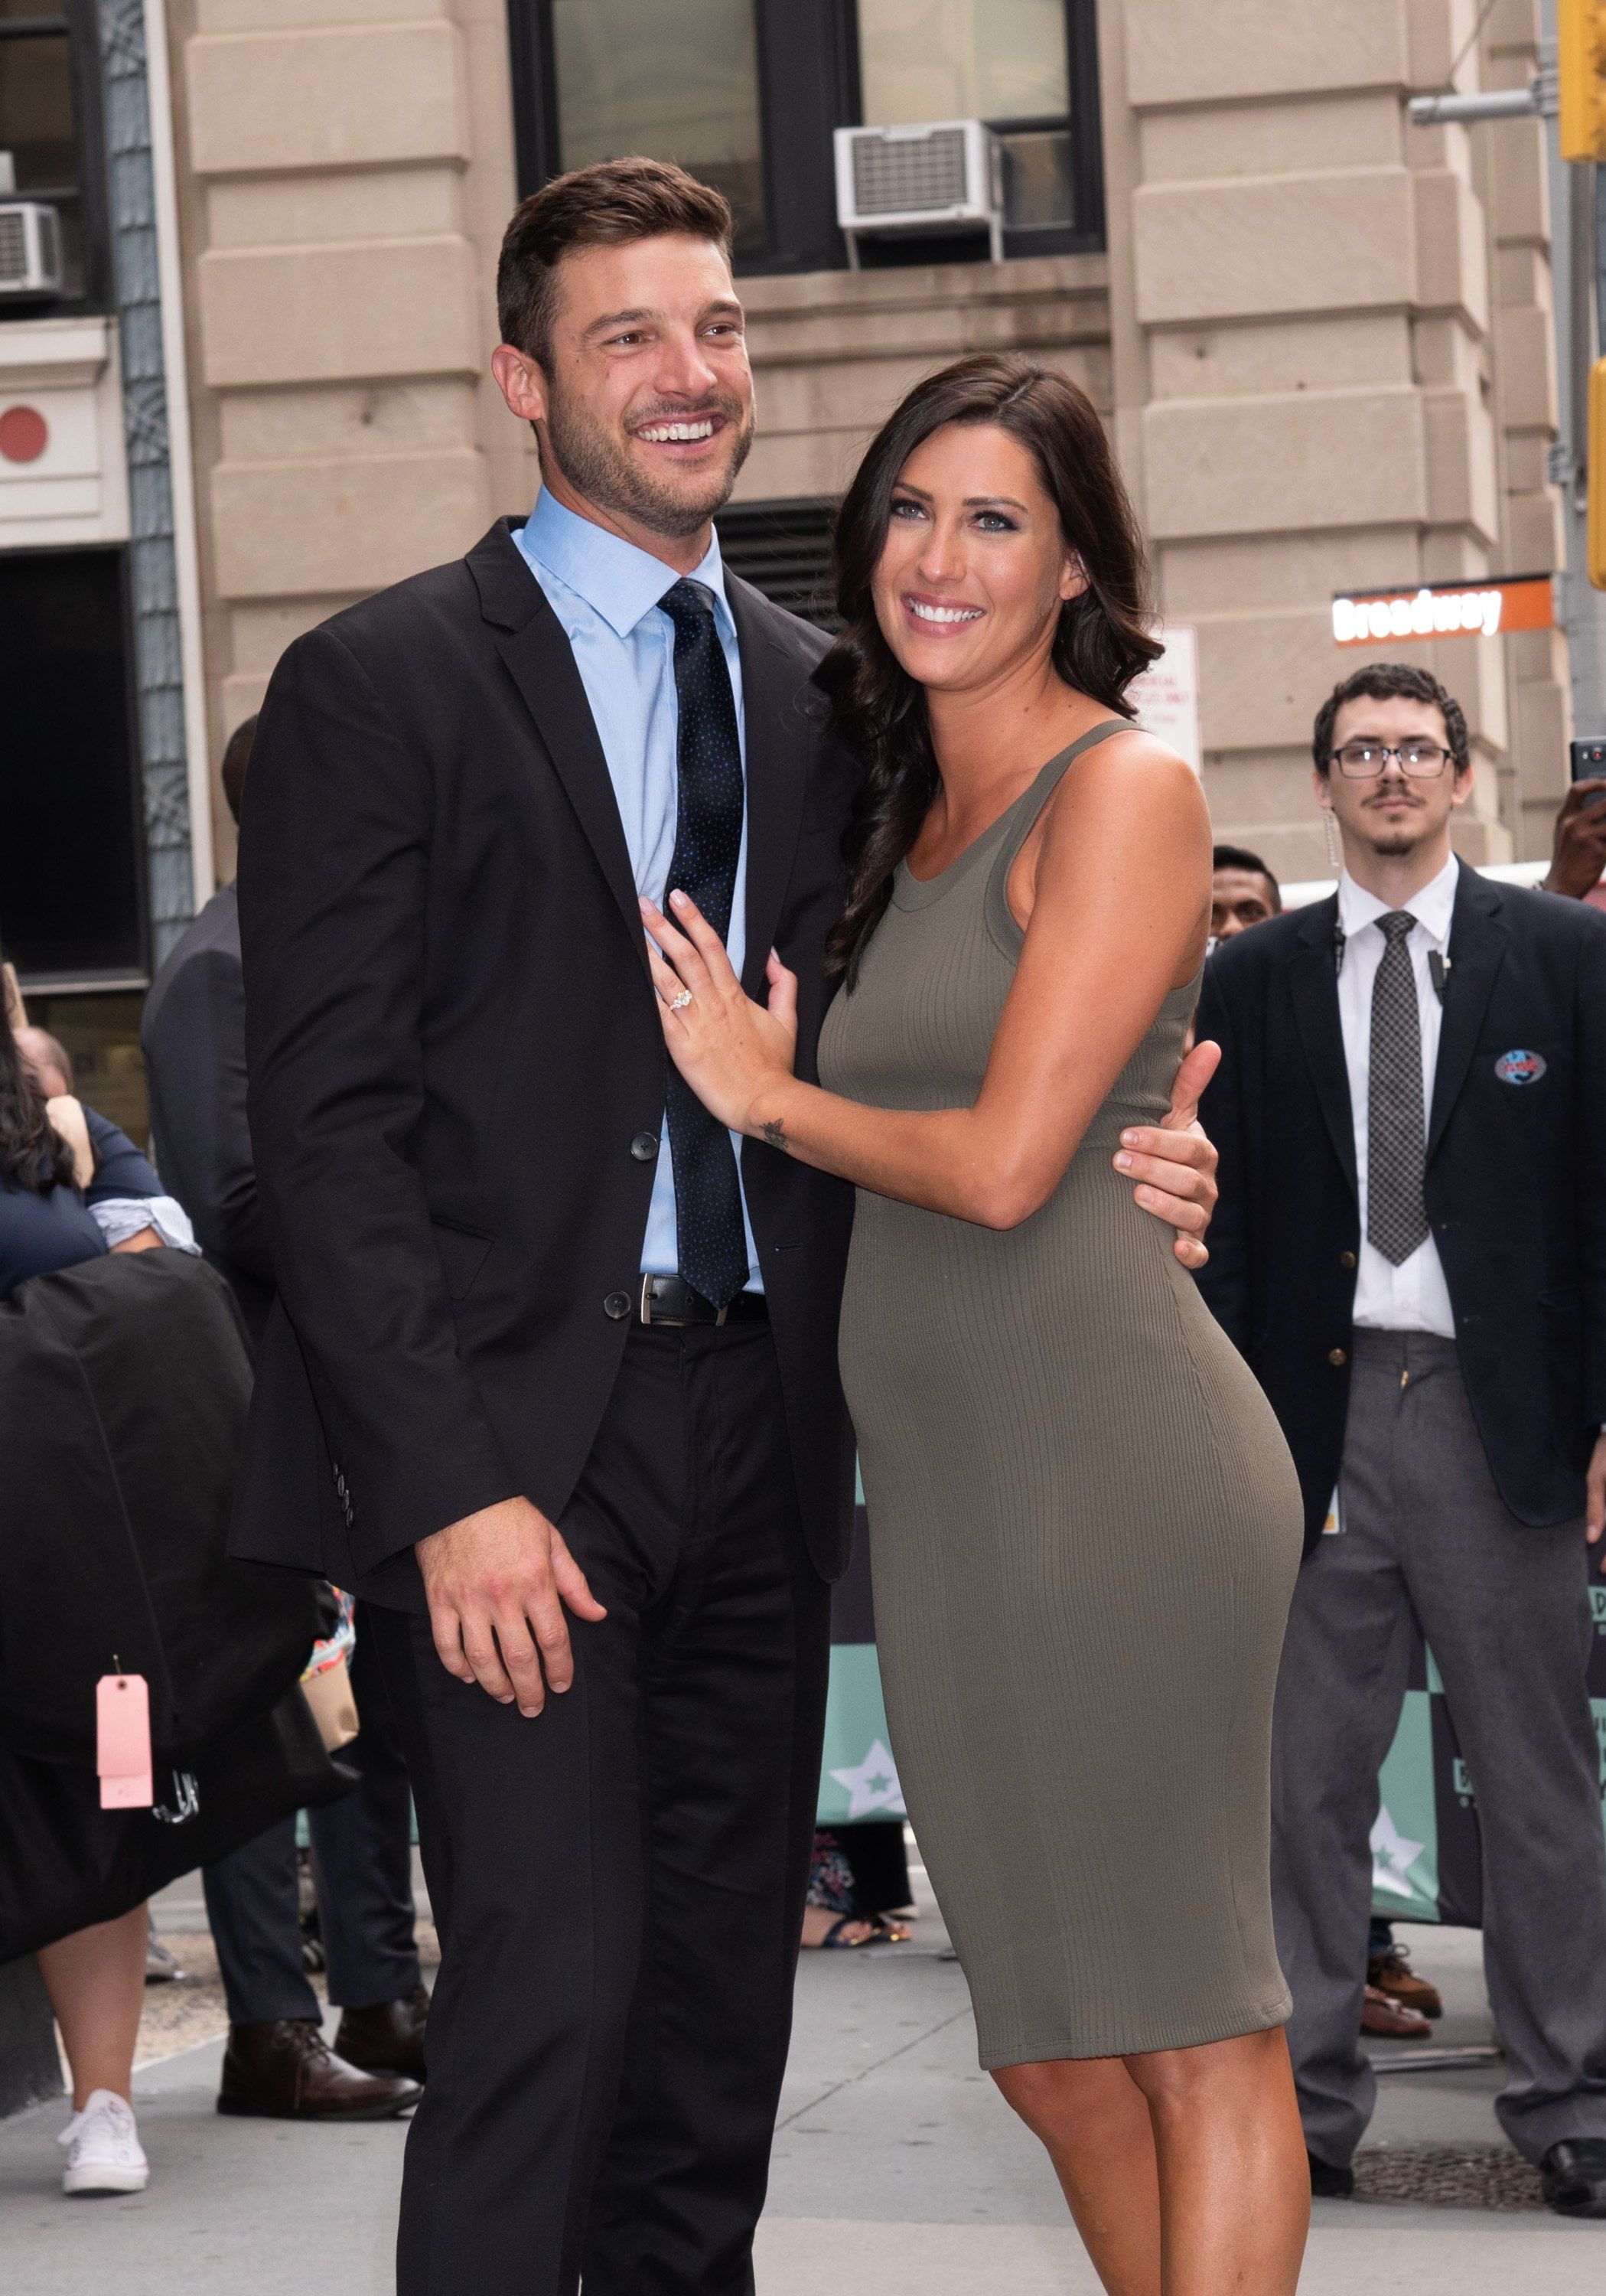 The Bachelorette's Engagement Rings: How Much Are They Worth? - Fame10